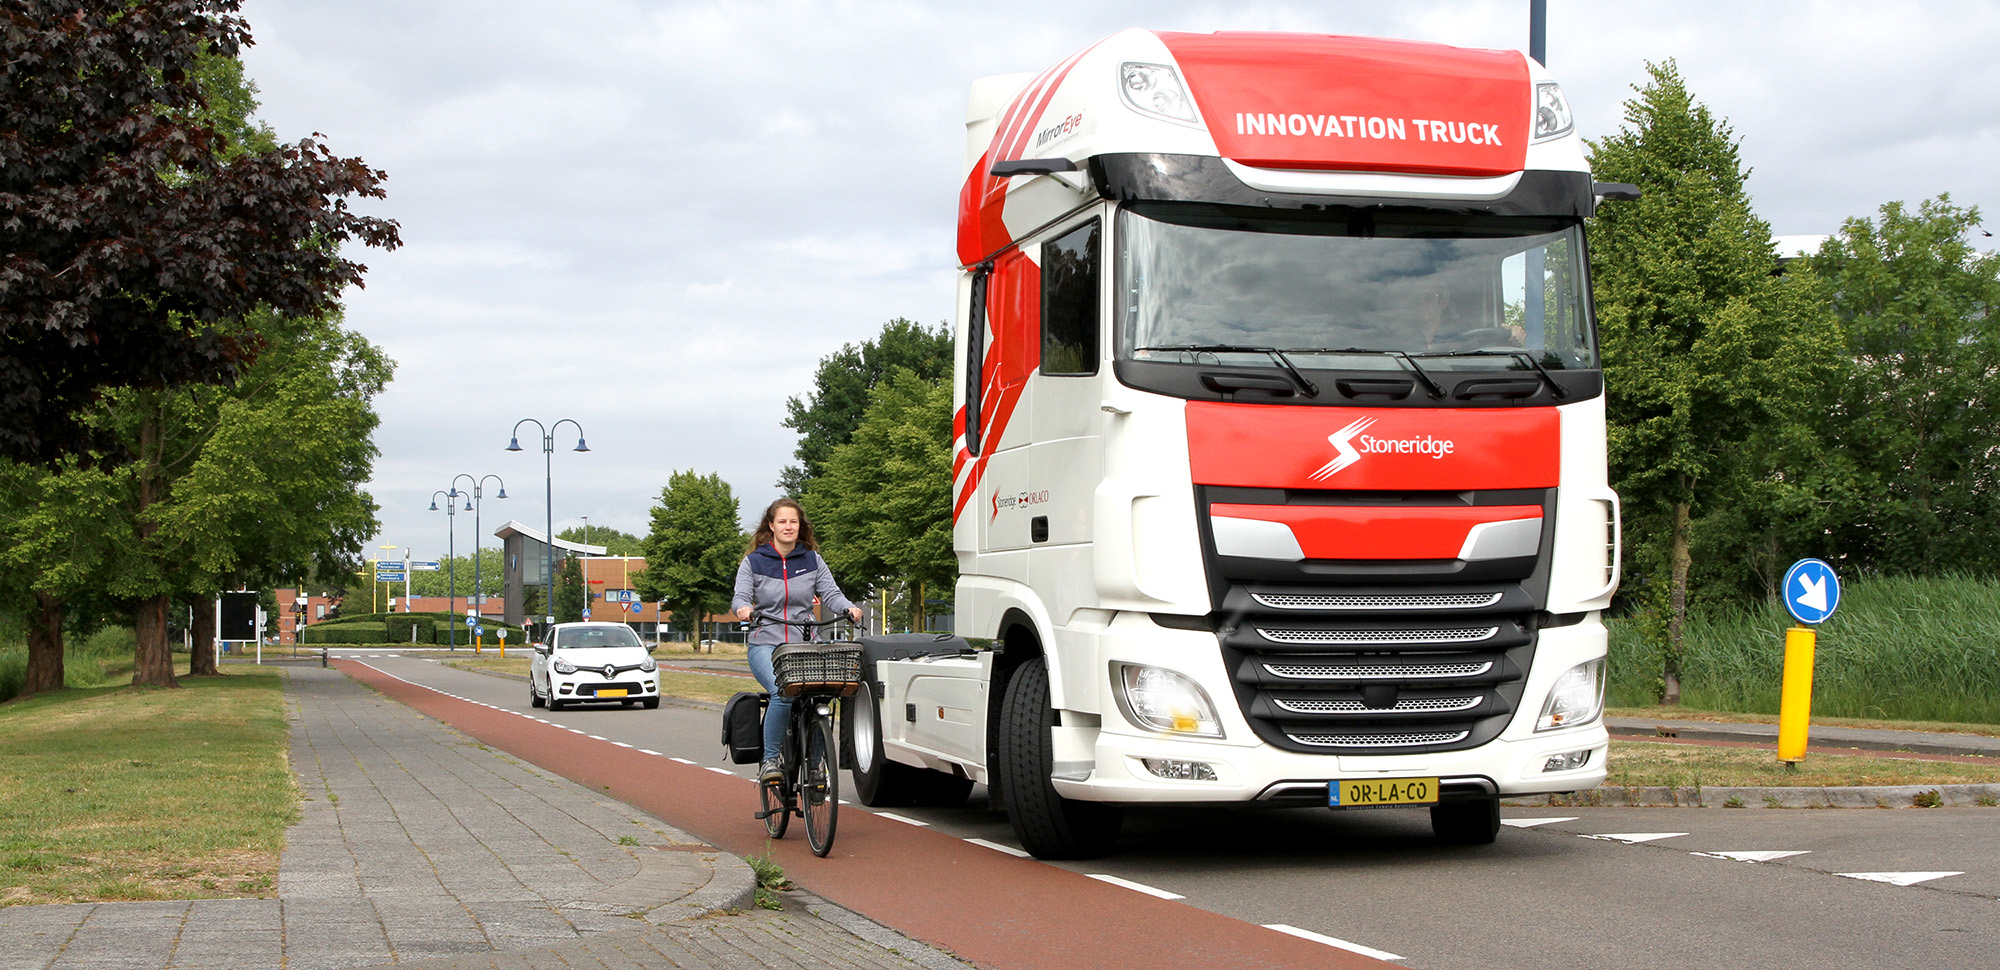 A large red and white Stoneridge 'innovation truck' driving down the road. There is a woman cycling in the bike lane beside the truck. On either side of the road there are trees and behind the truck on the road there is a white car.